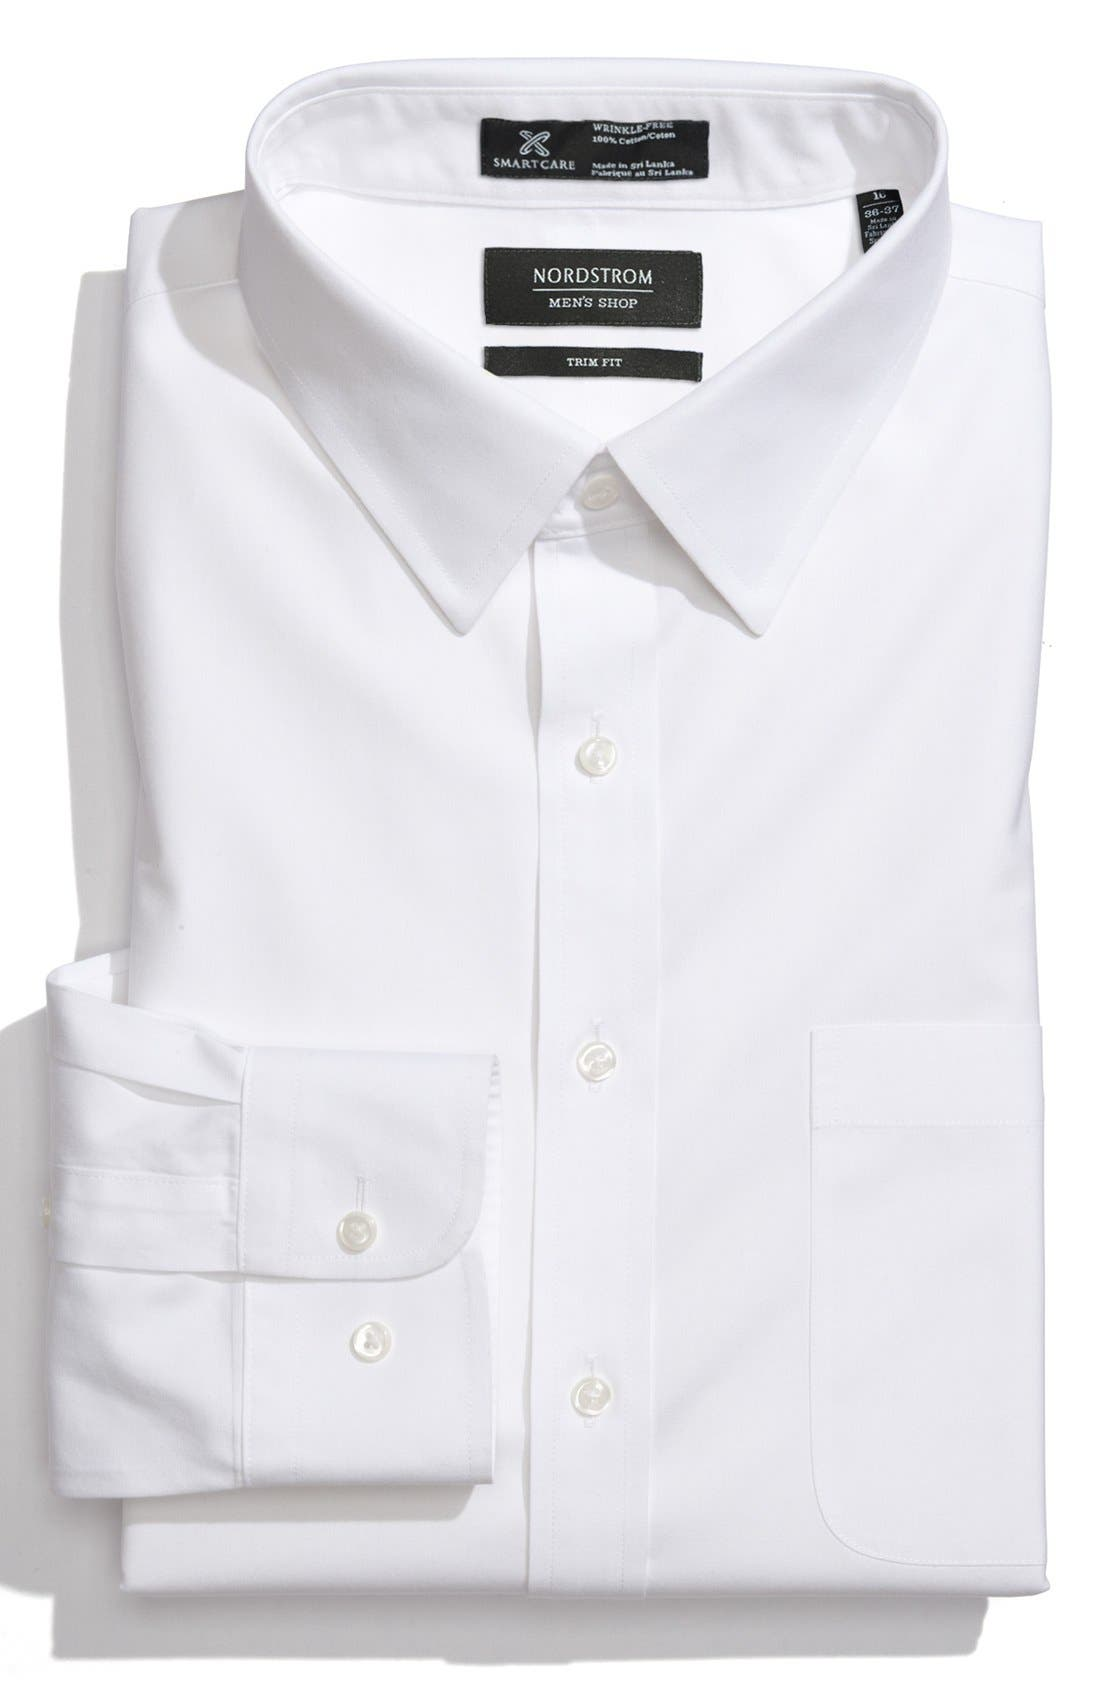 Alternate Image 1 Selected - Nordstrom Men's Shop Smartcare™ Trim Fit Solid Dress Shirt